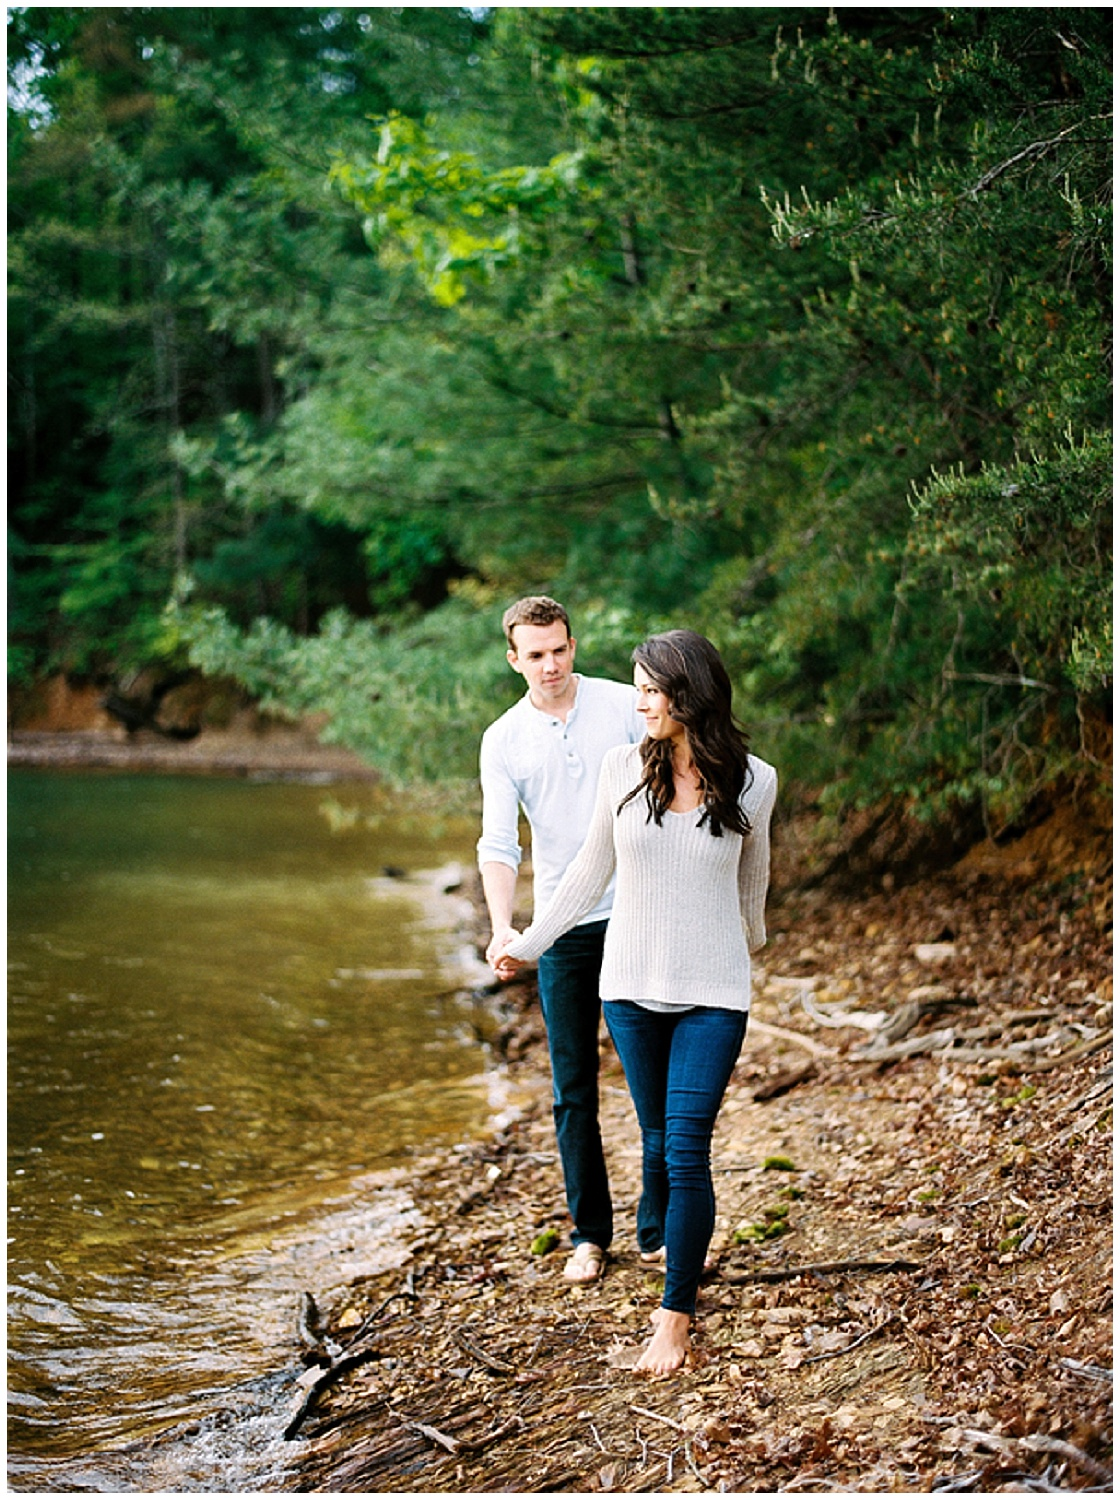 Tennessee Engagement Session | Camping Engagement Session | Fishing Engagement Session | Joy Wed blog | Finch Photo | www.joy-wed.com